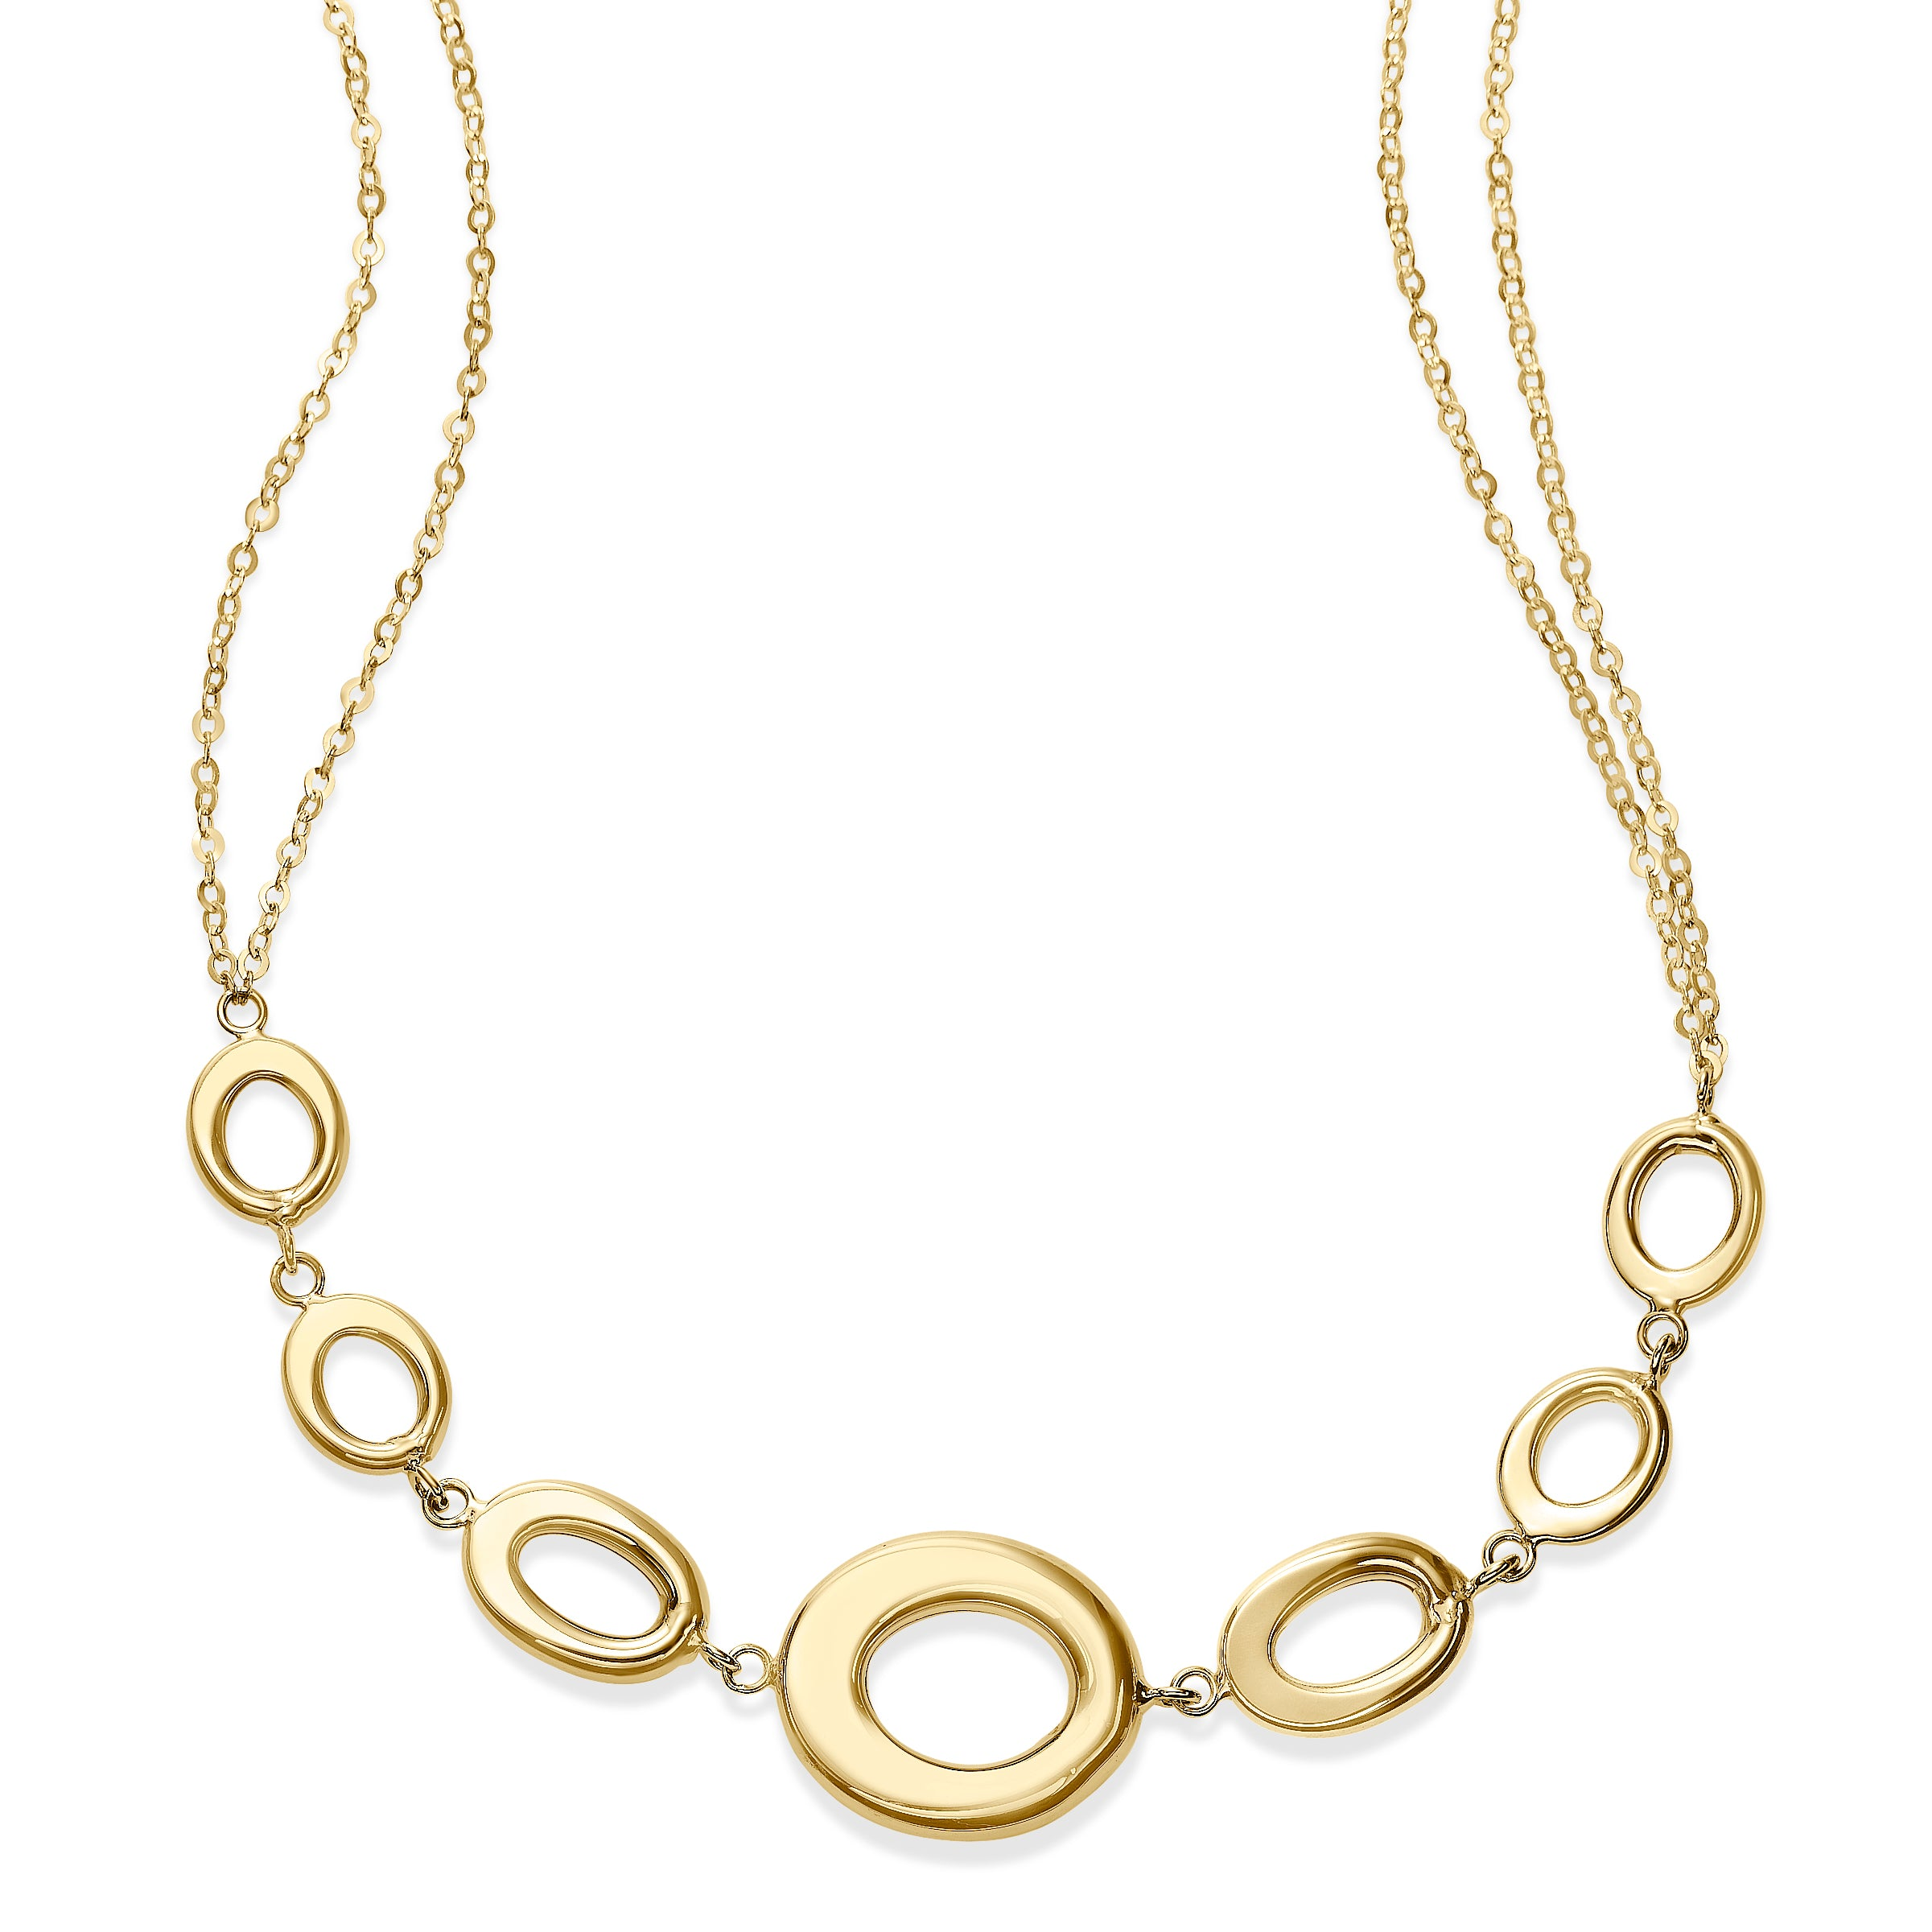 Oval Loops Gold Necklace, 14K Yellow Gold